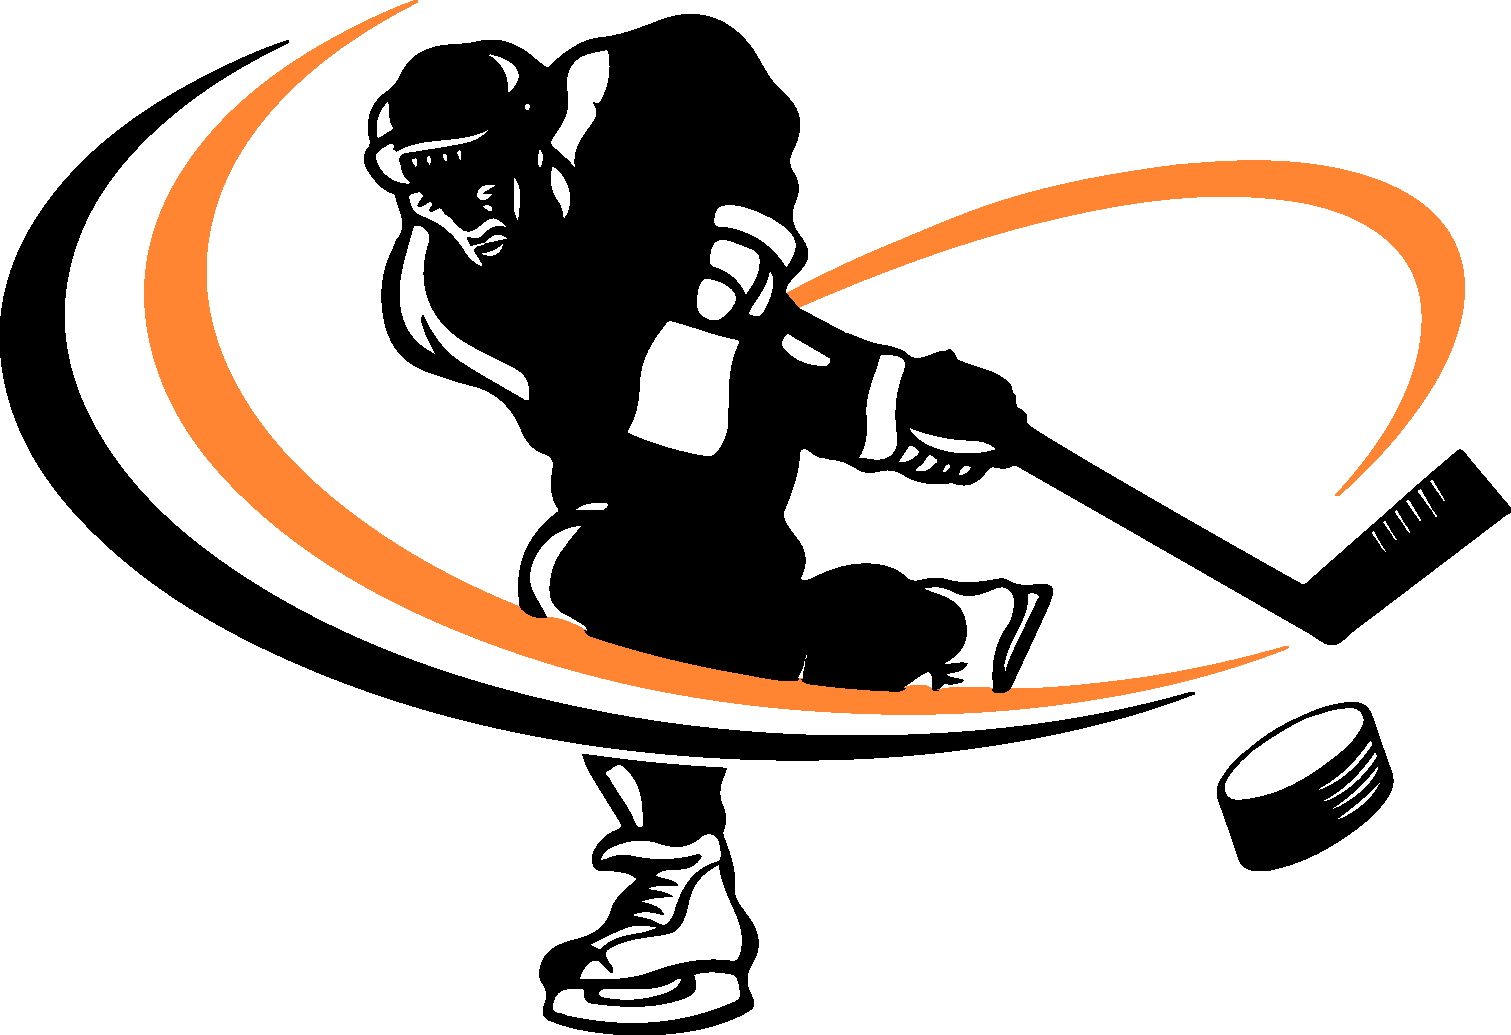 hockey logo.jpg